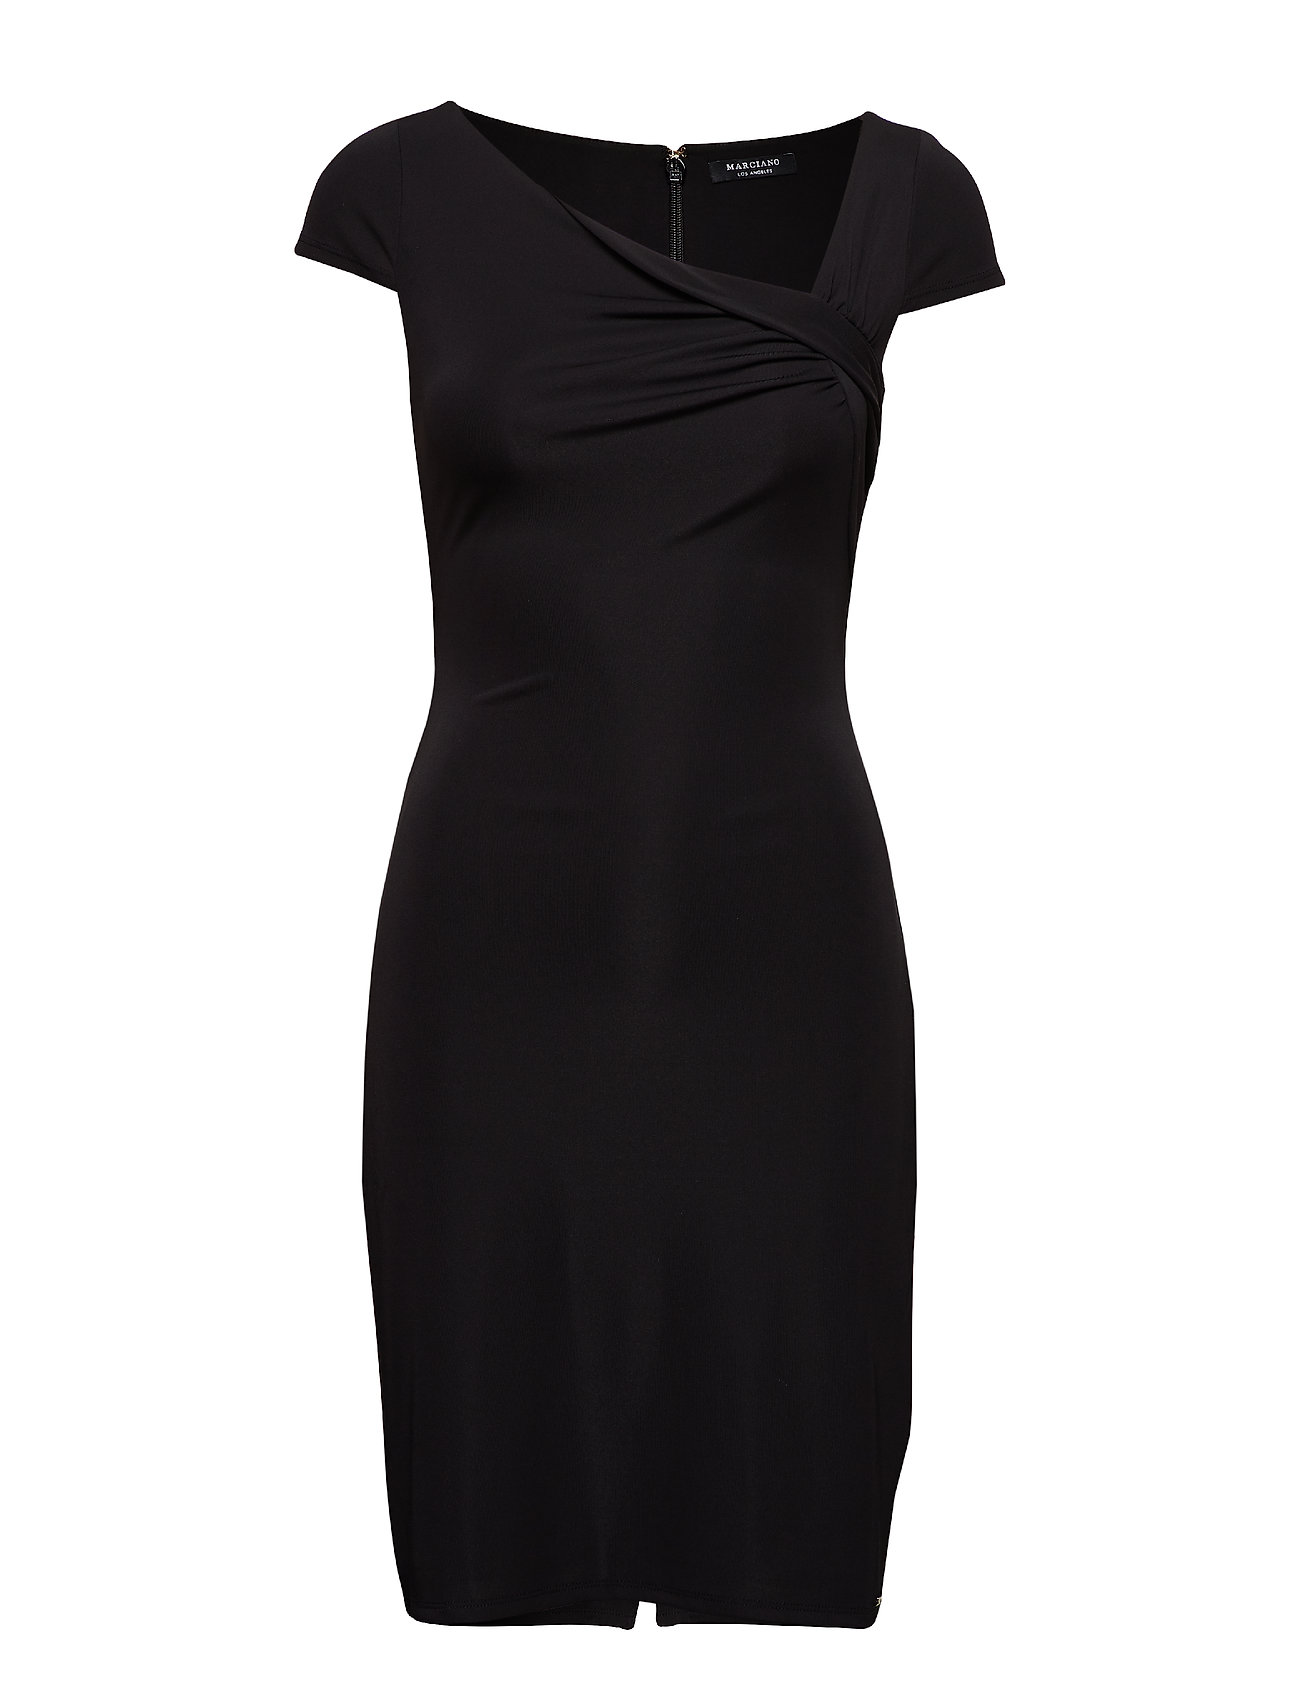 Marciano by GUESS PATRICIA DRESS - JET BLACK A996